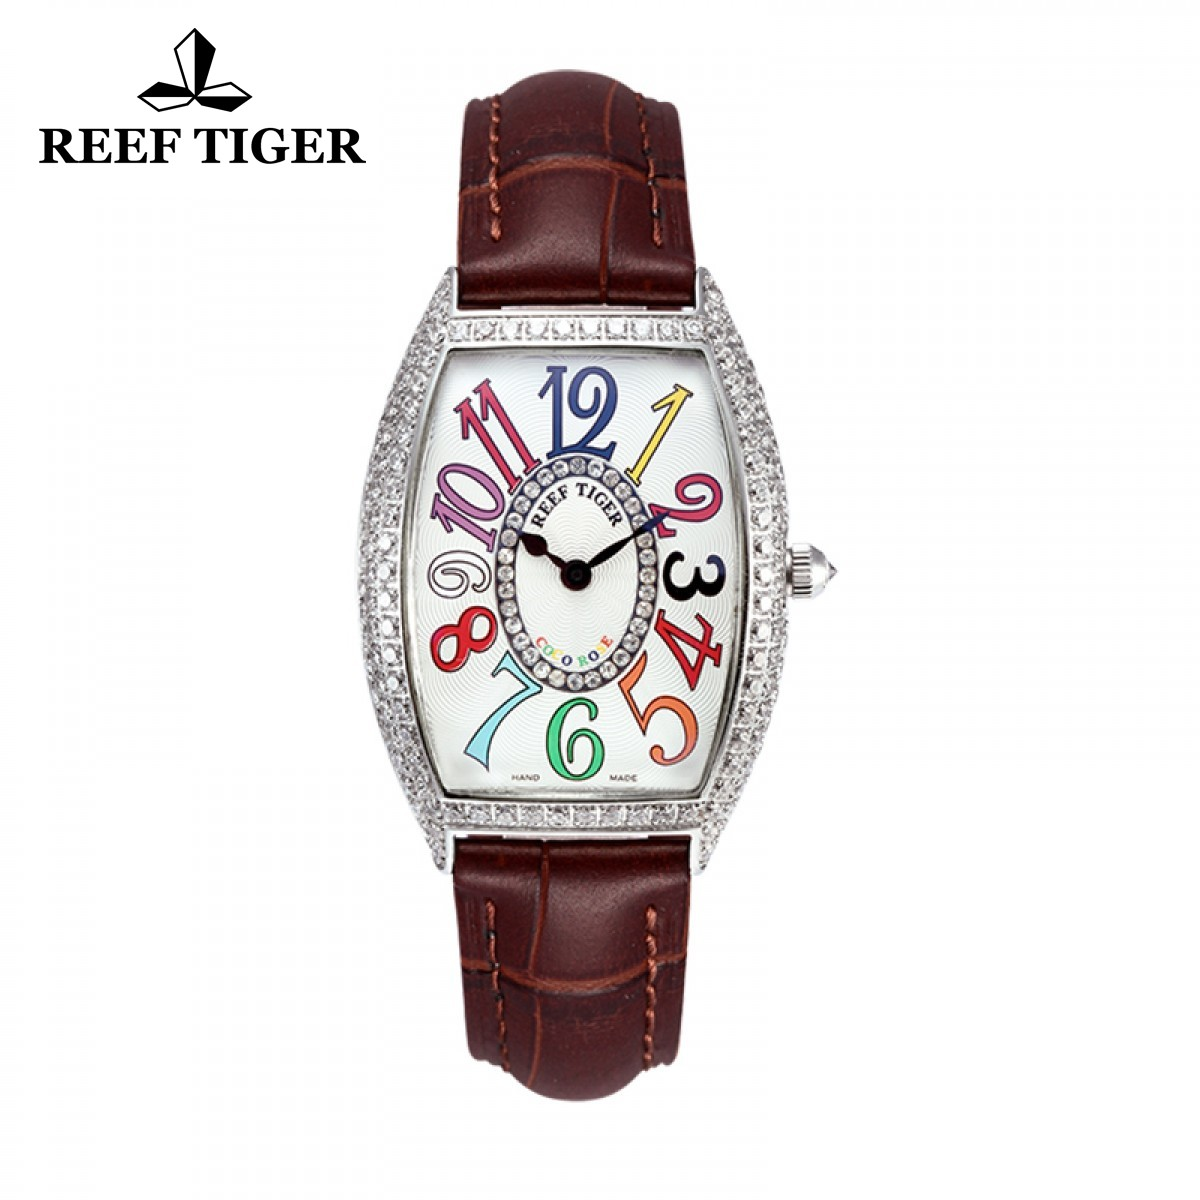 Reef Tiger Lady Fashion Watch Steel Case White Dial Leather Strap Diamonds Tonneau Watch RGA171-YWBD